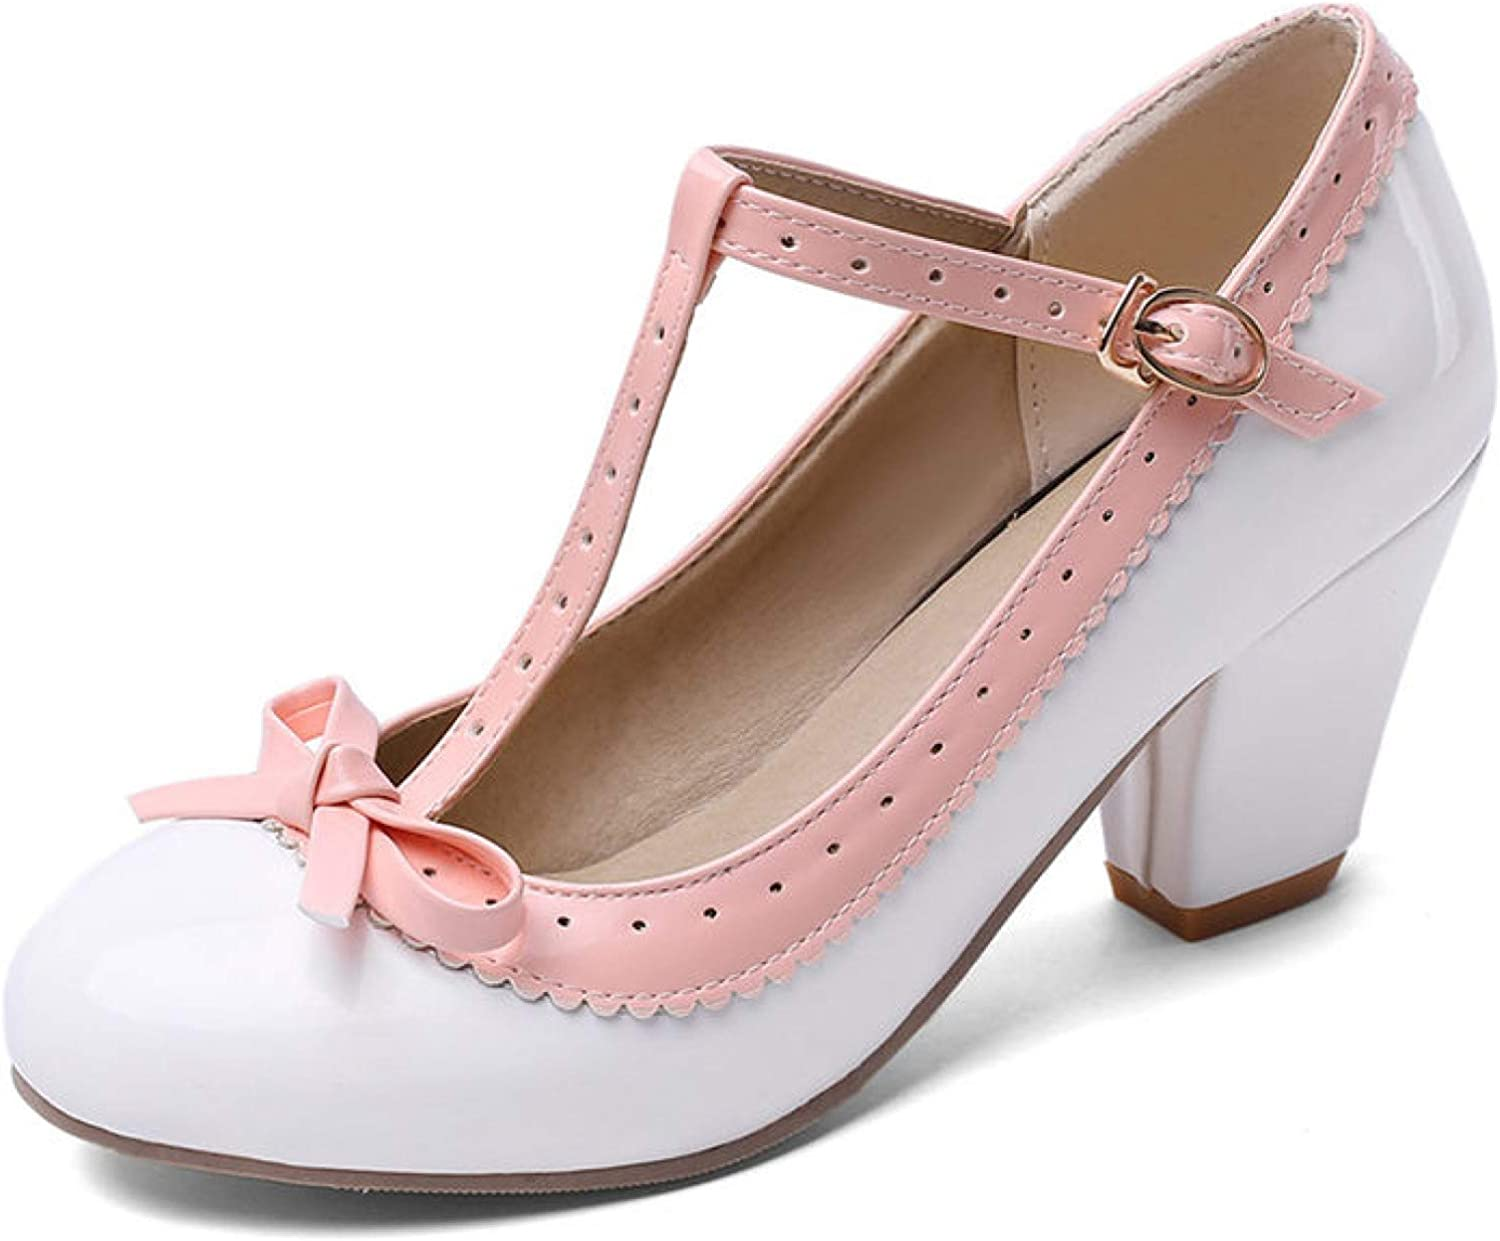 Womens T-Strap Round Toe Oxfords Mary Jane High Block Heel Walking Dress Shoes